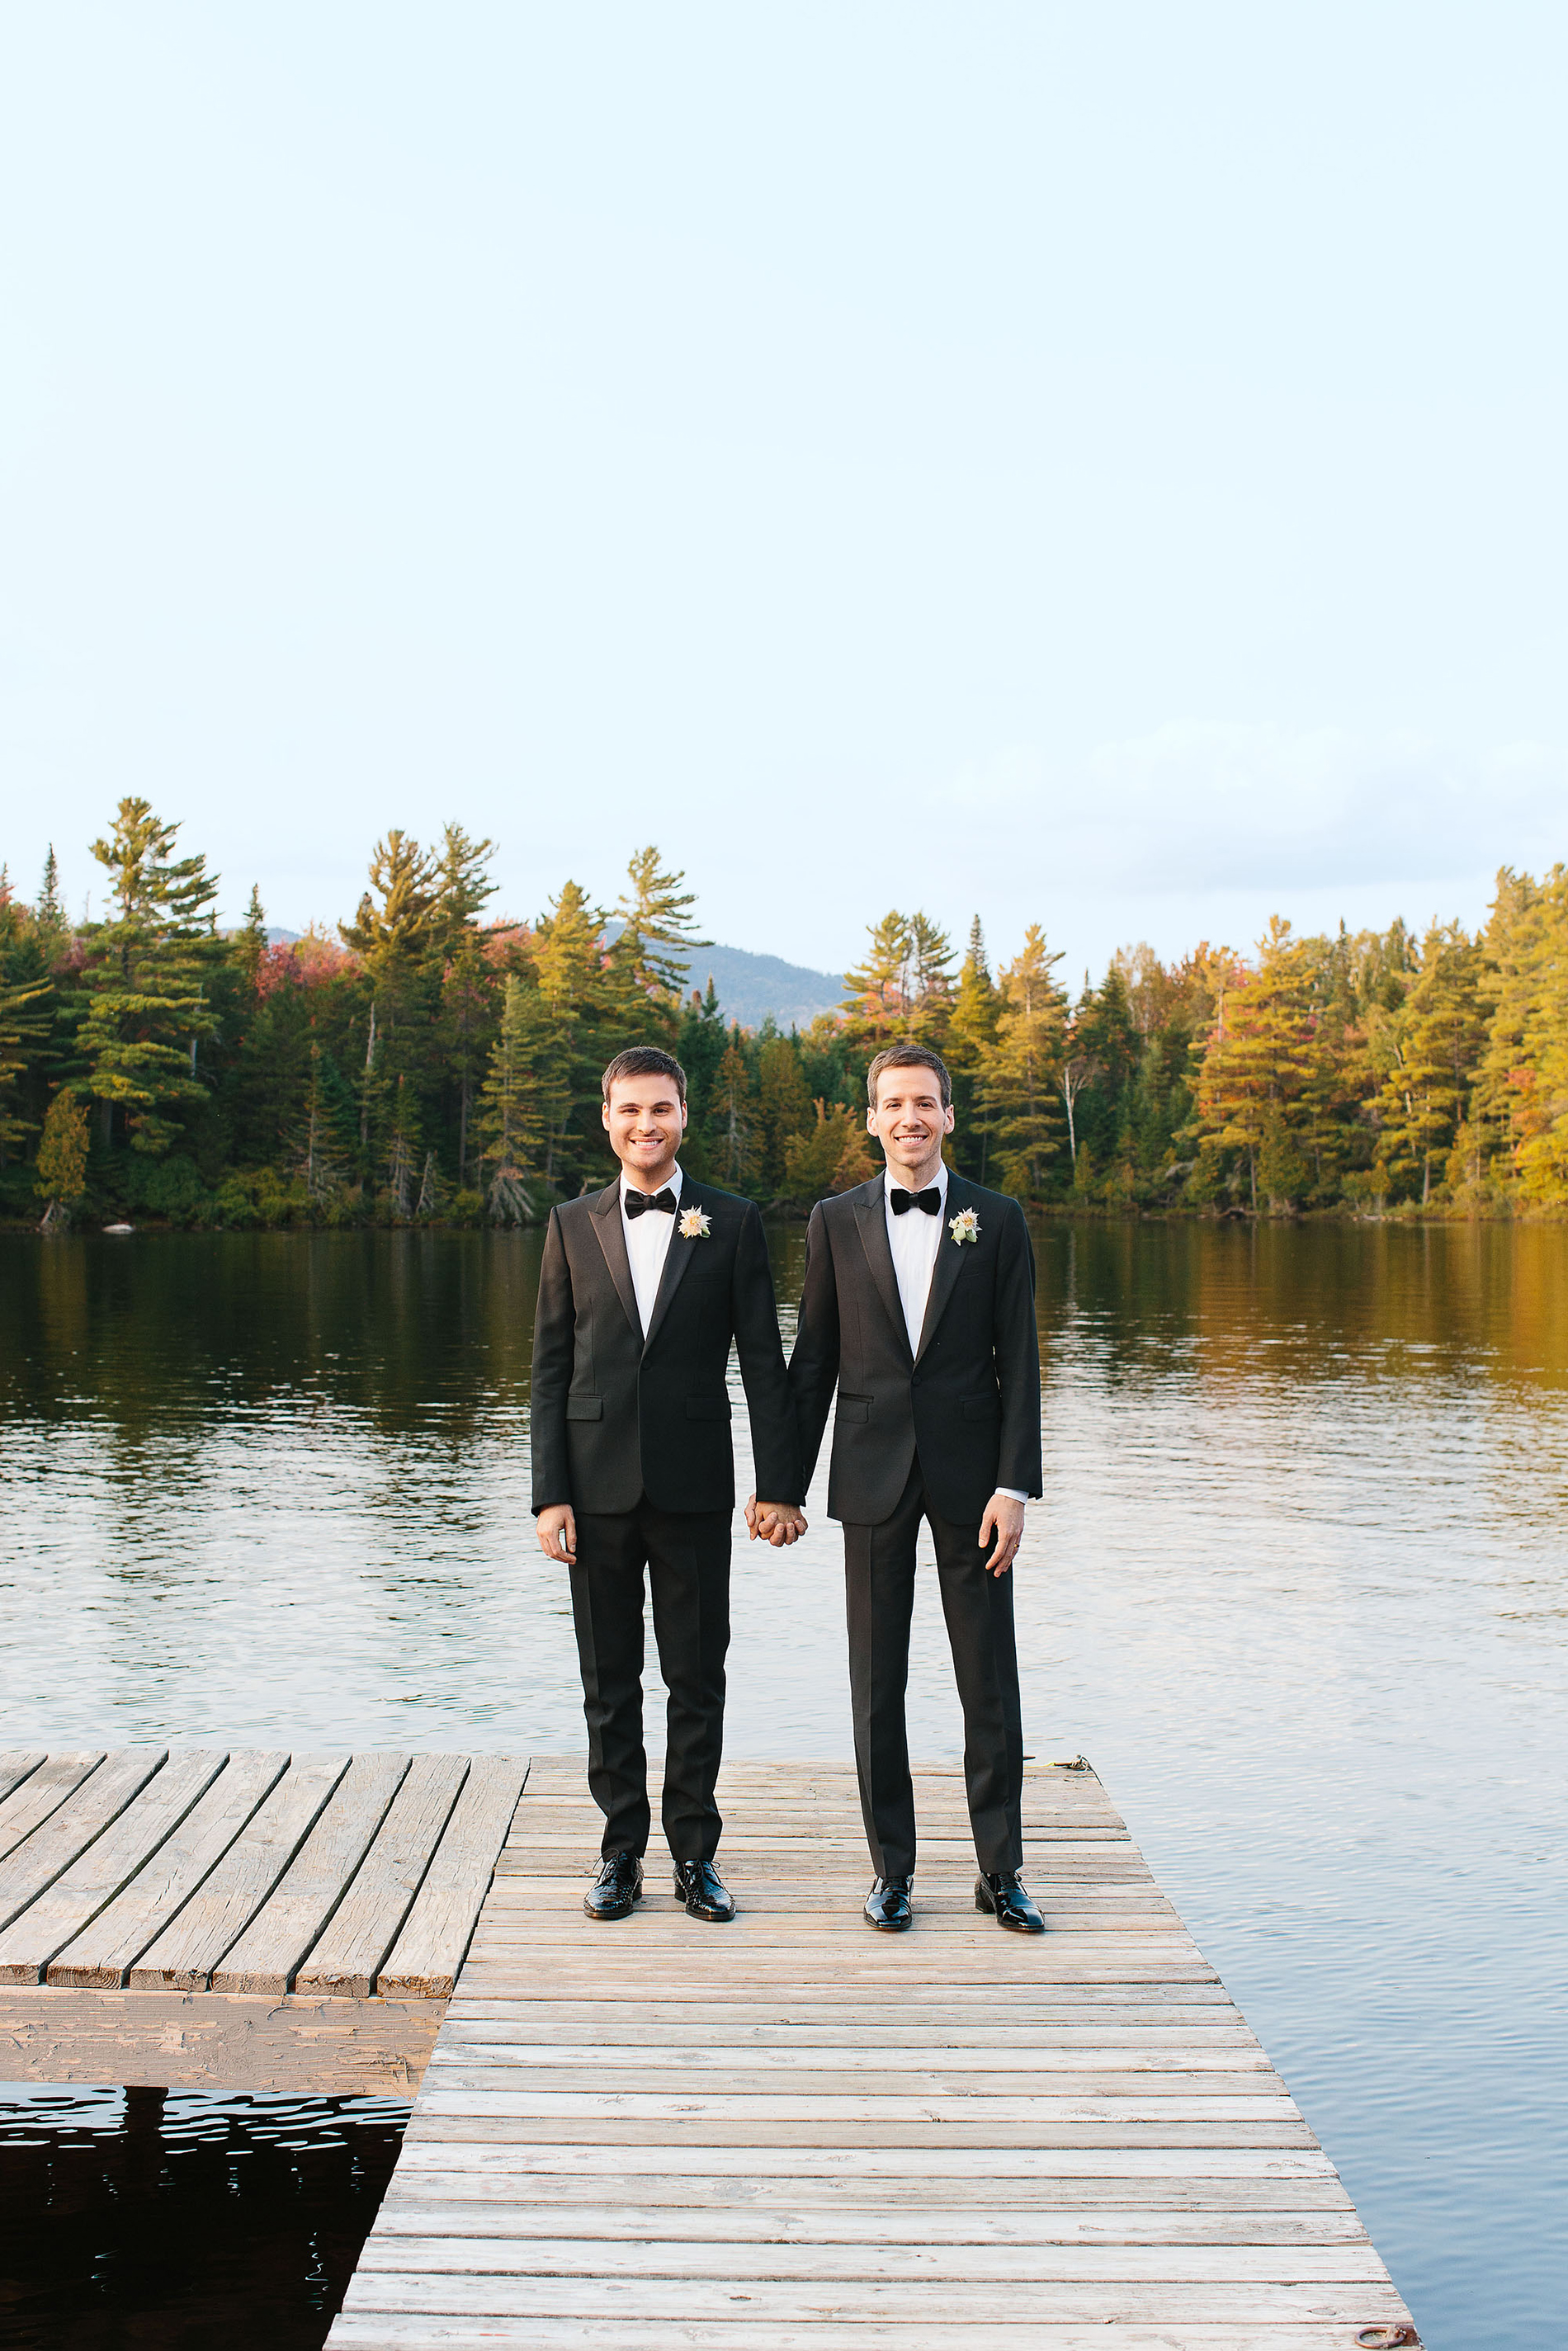 tory sean wedding lake placid new york couple grooms hands